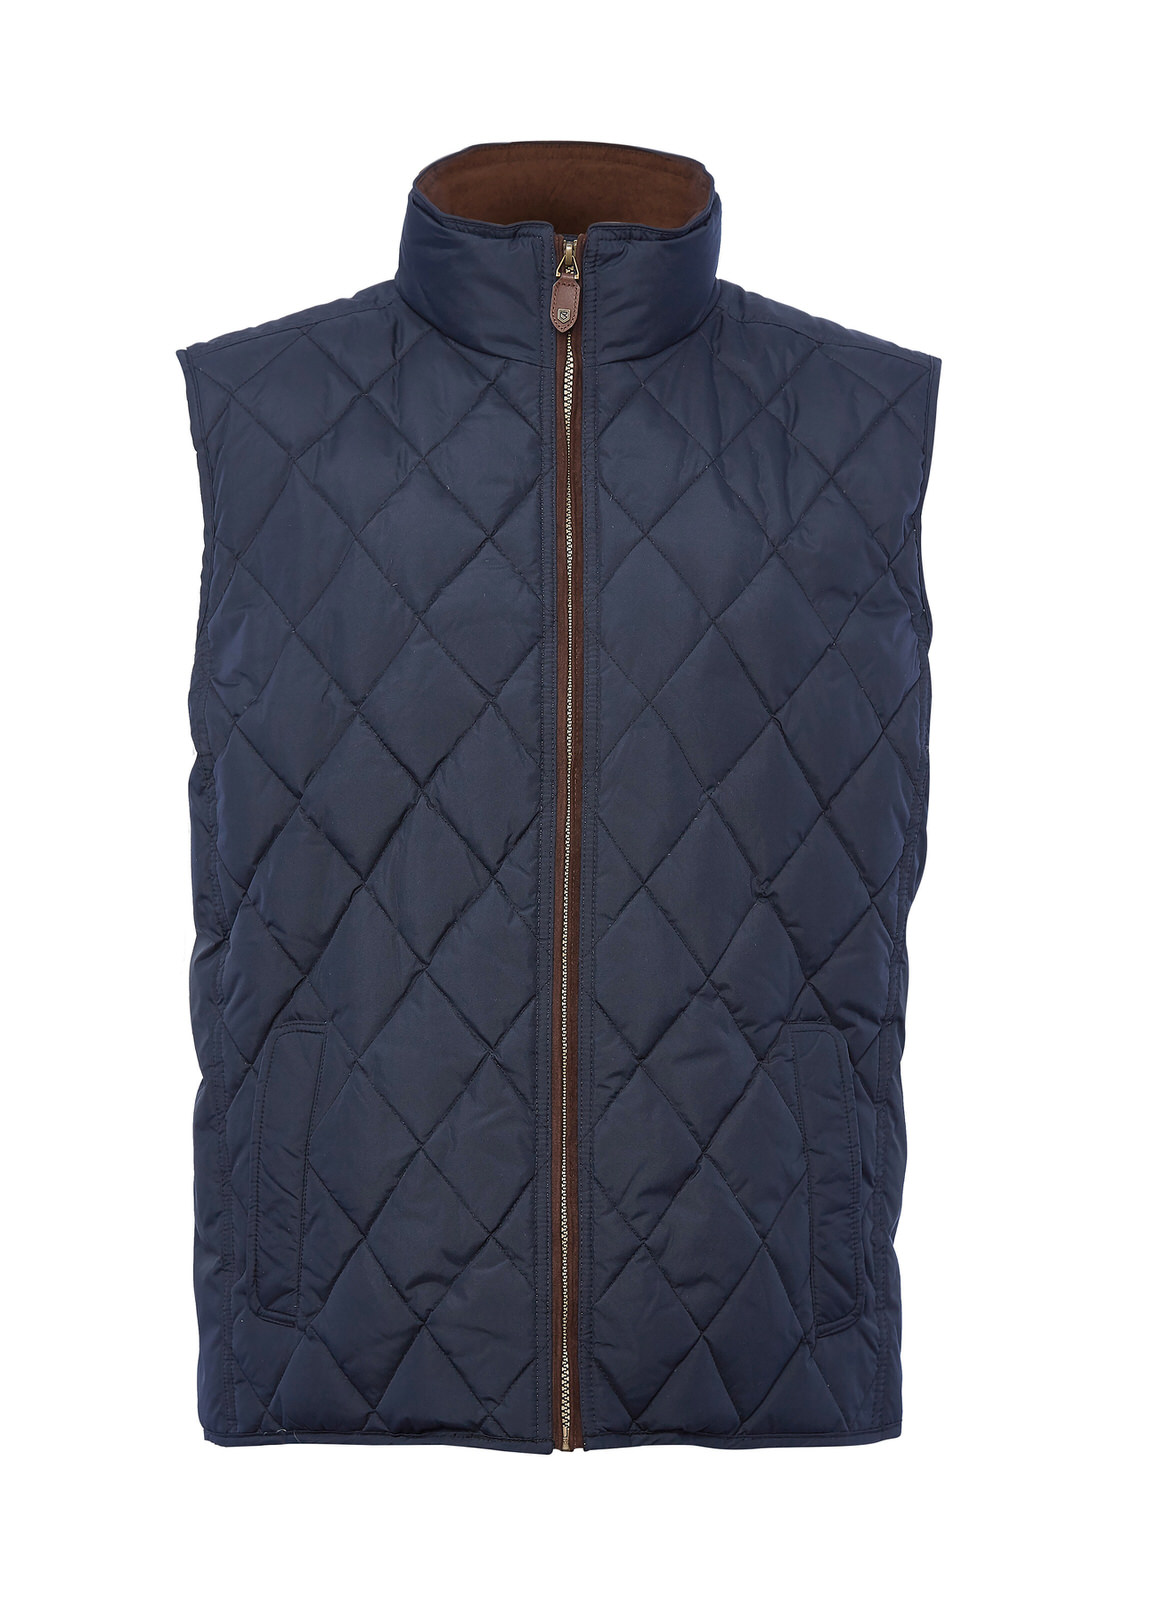 Davis_Quilted_Gilet_Navy_Image_1